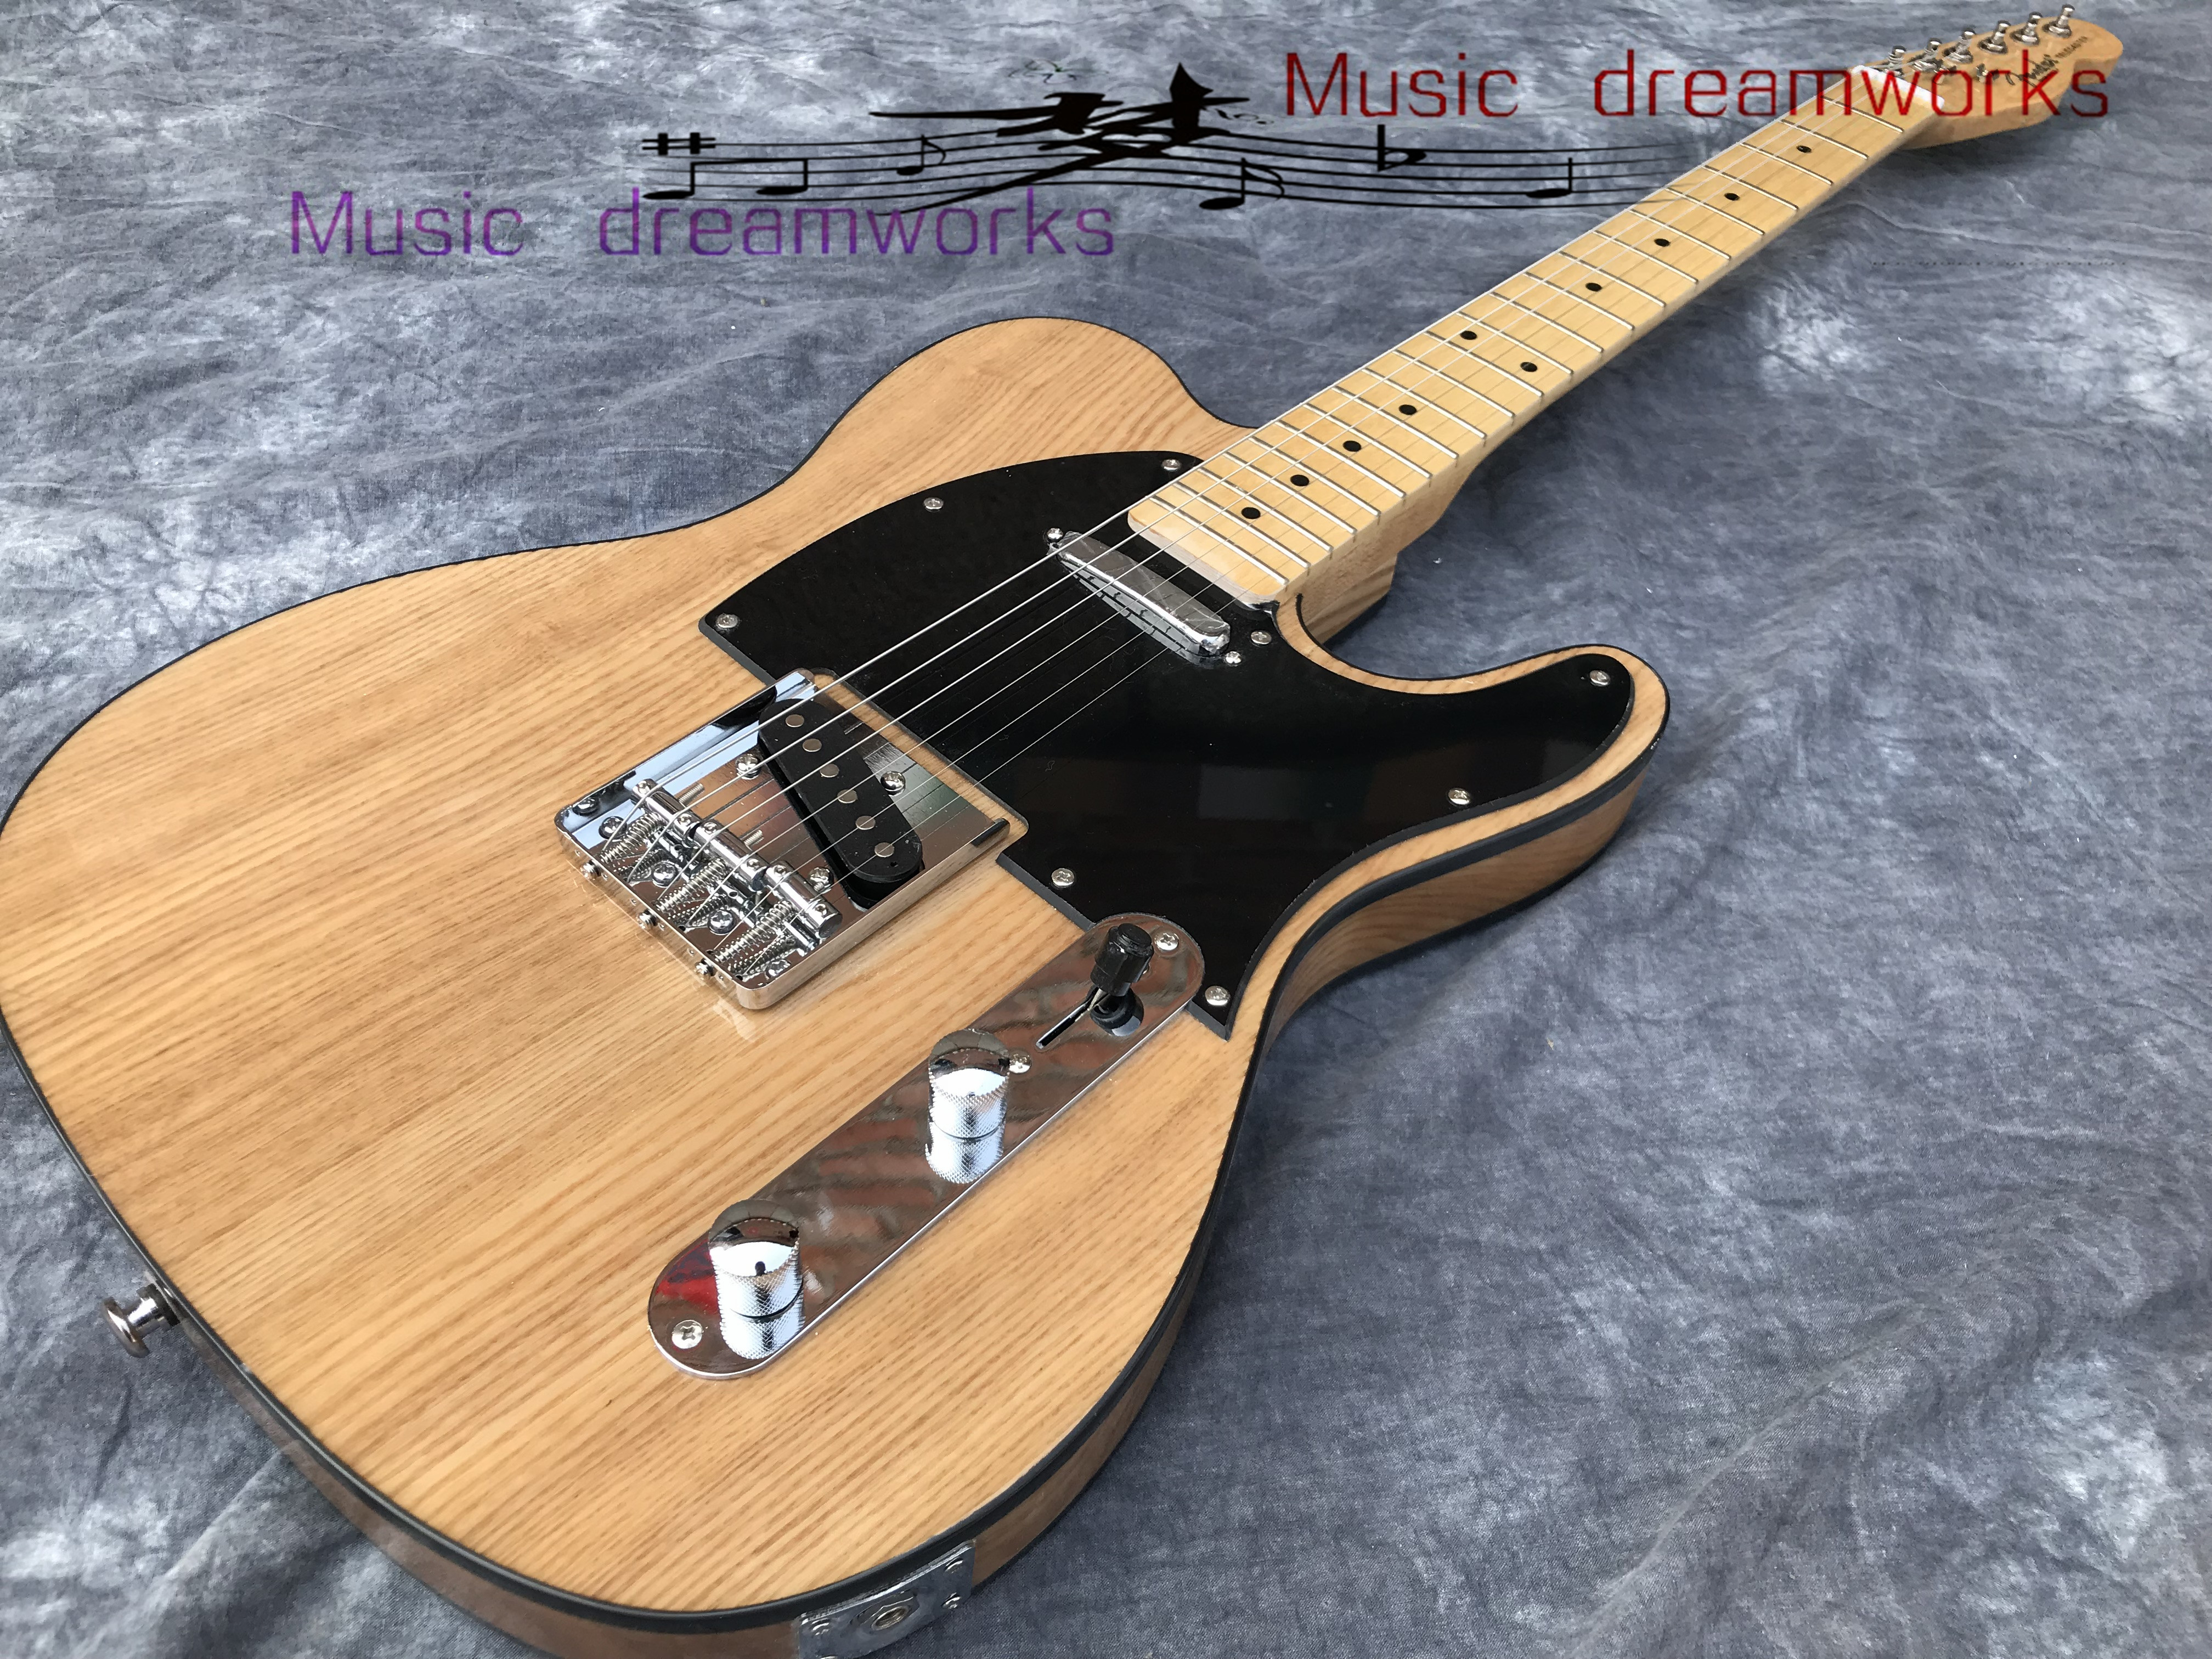 China firehawk electric guitar, T1L2 alder body light  color The color and logo can be changed  Free shippingChina firehawk electric guitar, T1L2 alder body light  color The color and logo can be changed  Free shipping